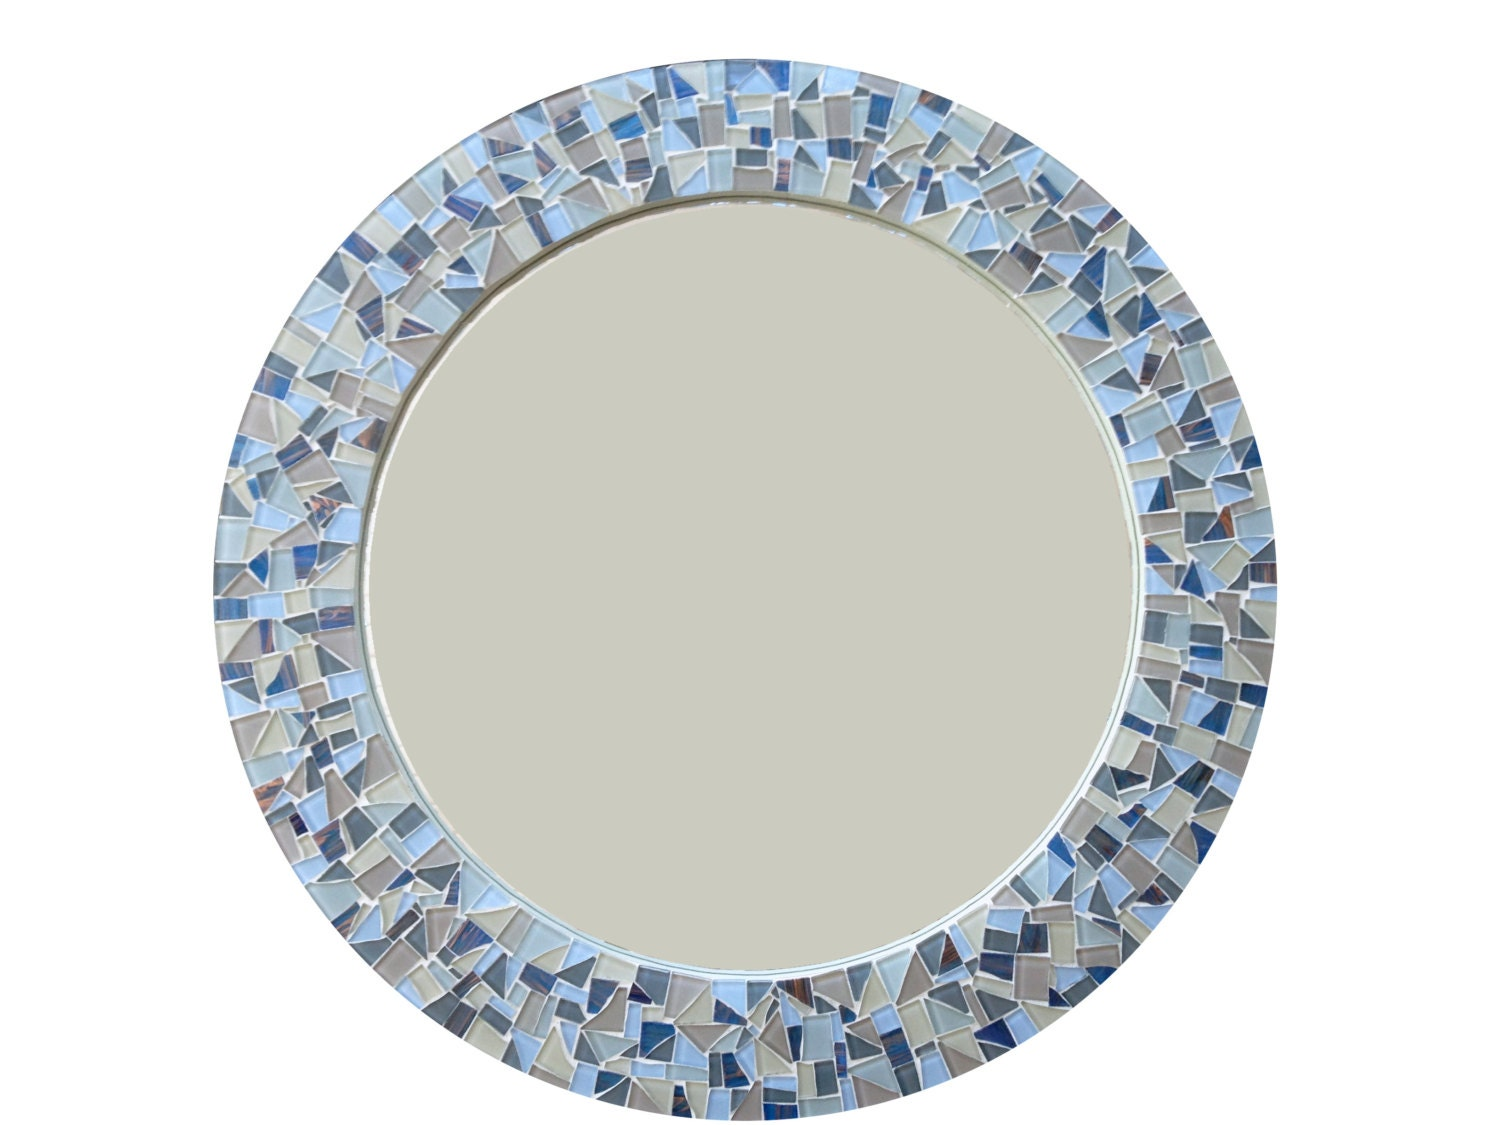 Round mirror mosaic wall mirror blue gray and tan cottage for Mosaic mirror